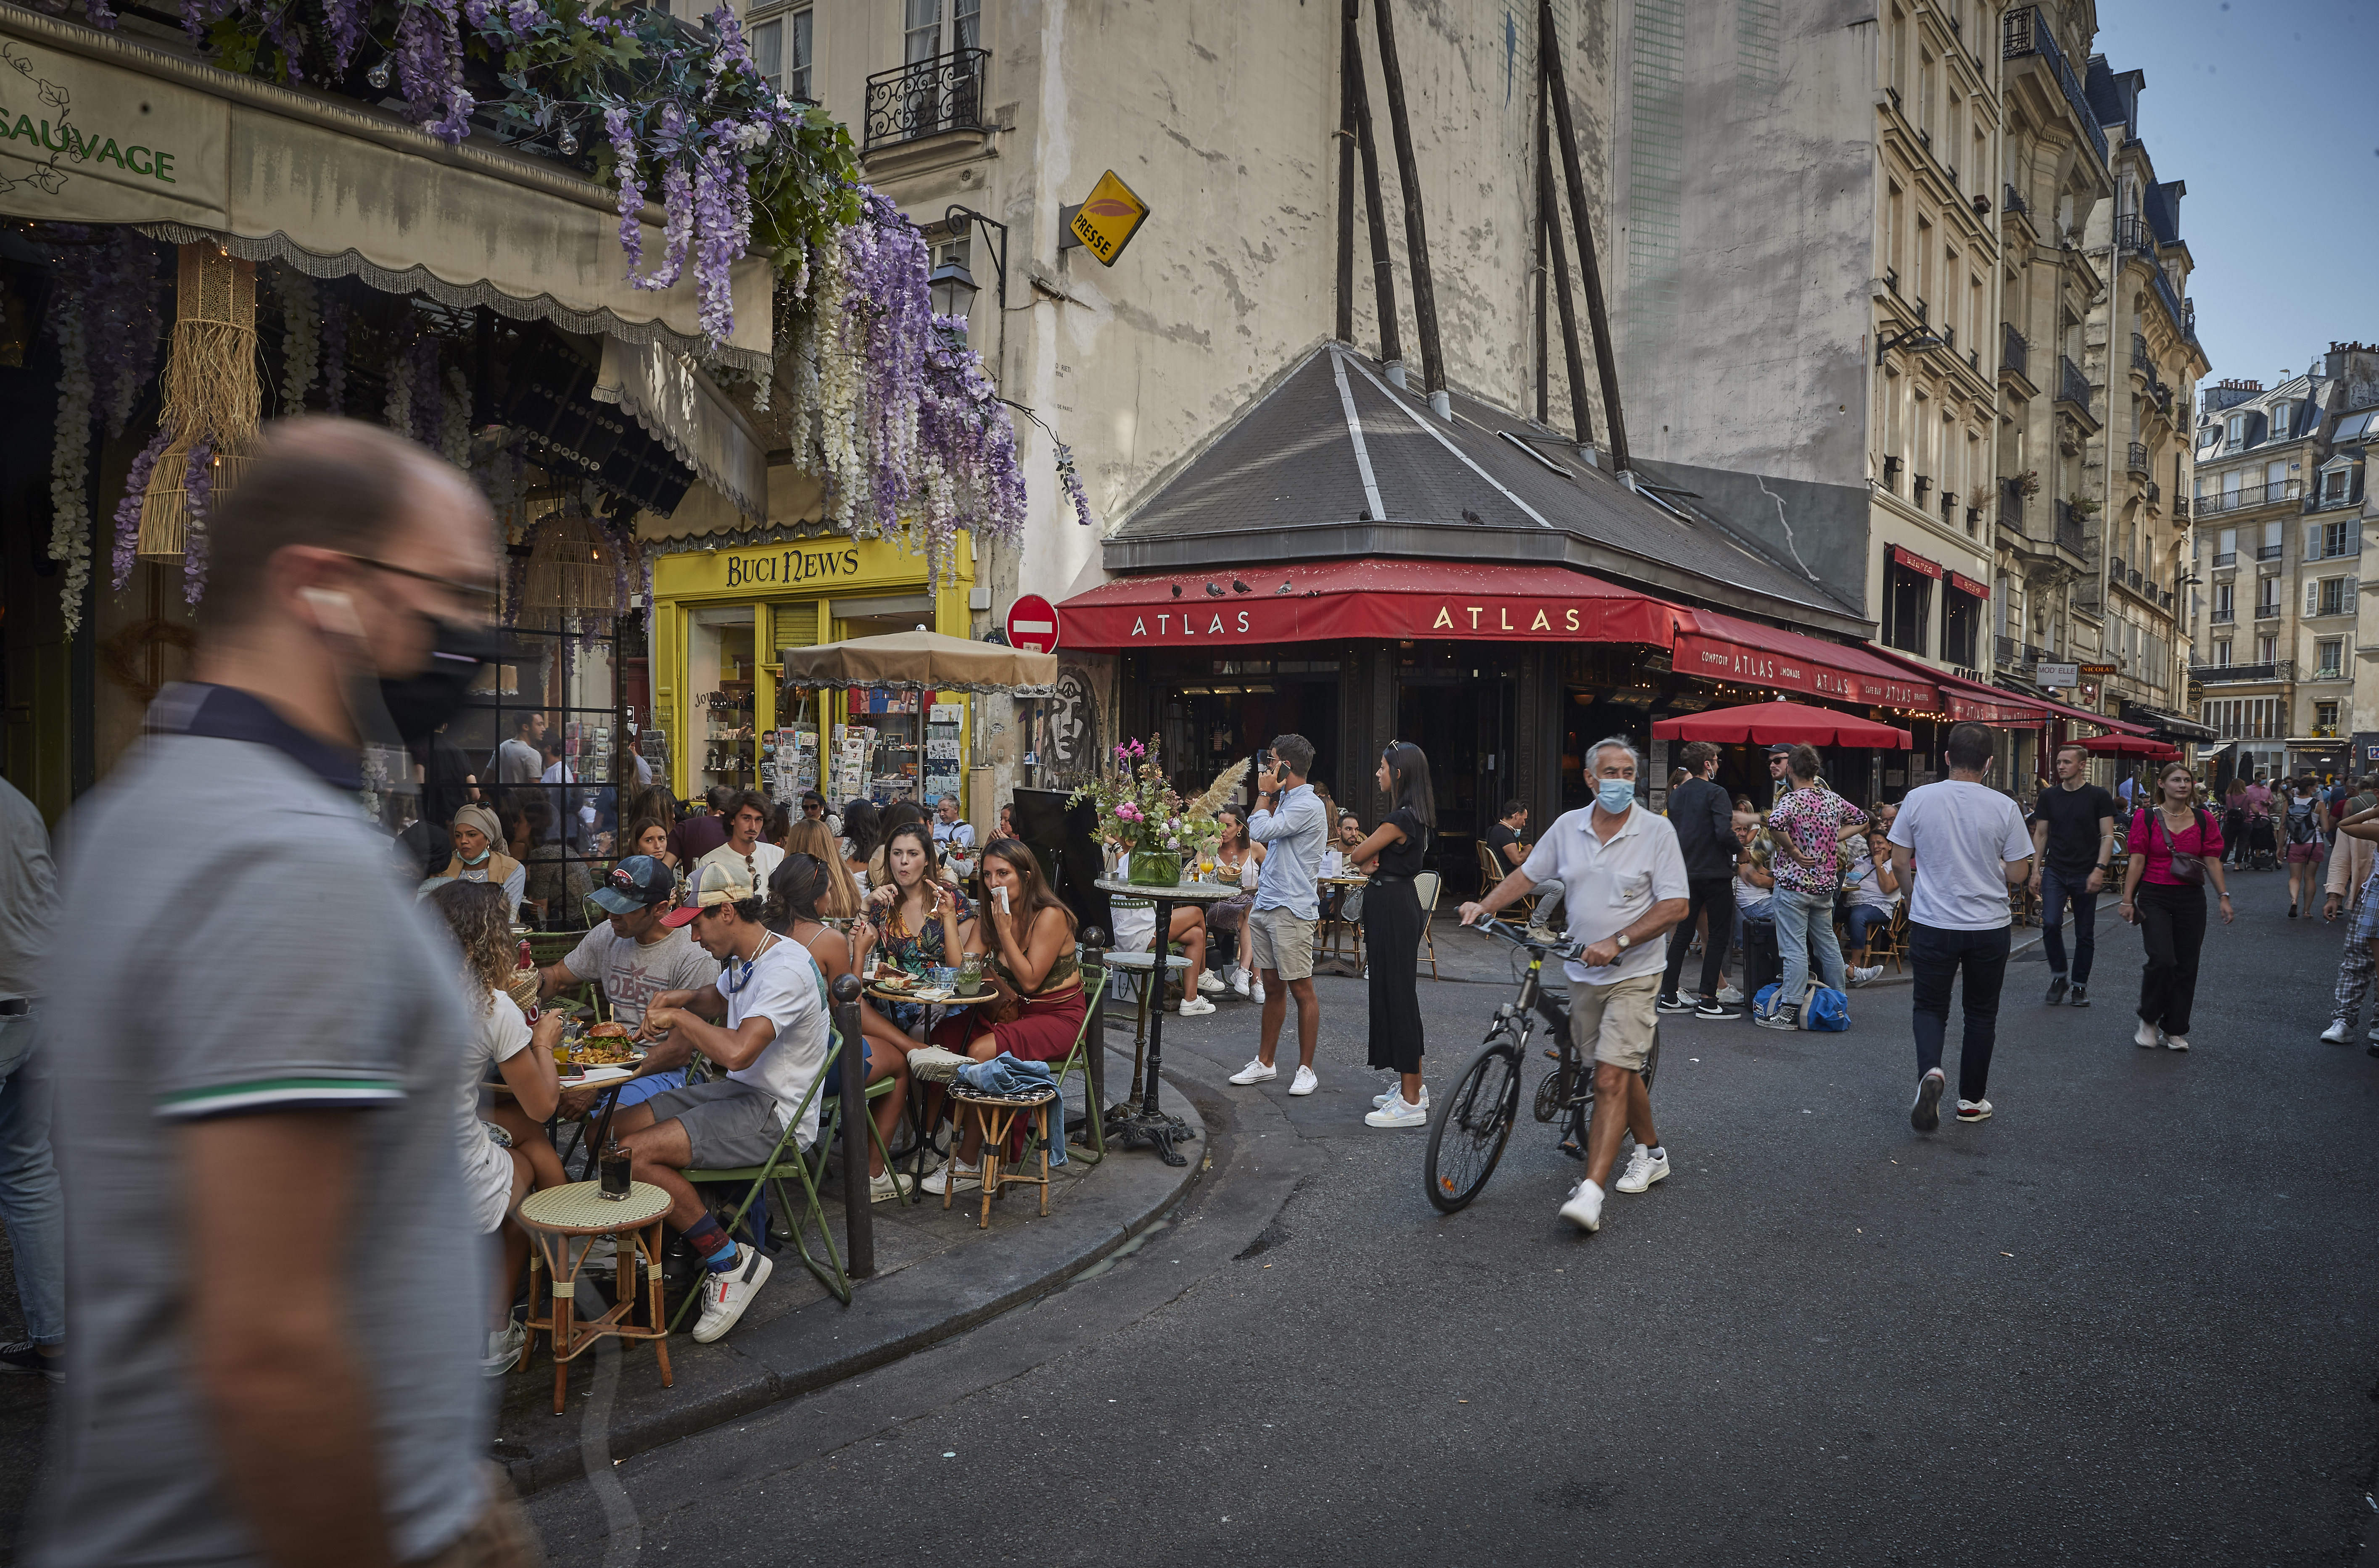 Parisians enjoy the late summer weather in packed cafes and restaurants on the Rue de Buci, Paris, despite the recent surge in Covid-19 infections throughout Paris and France on September 13.